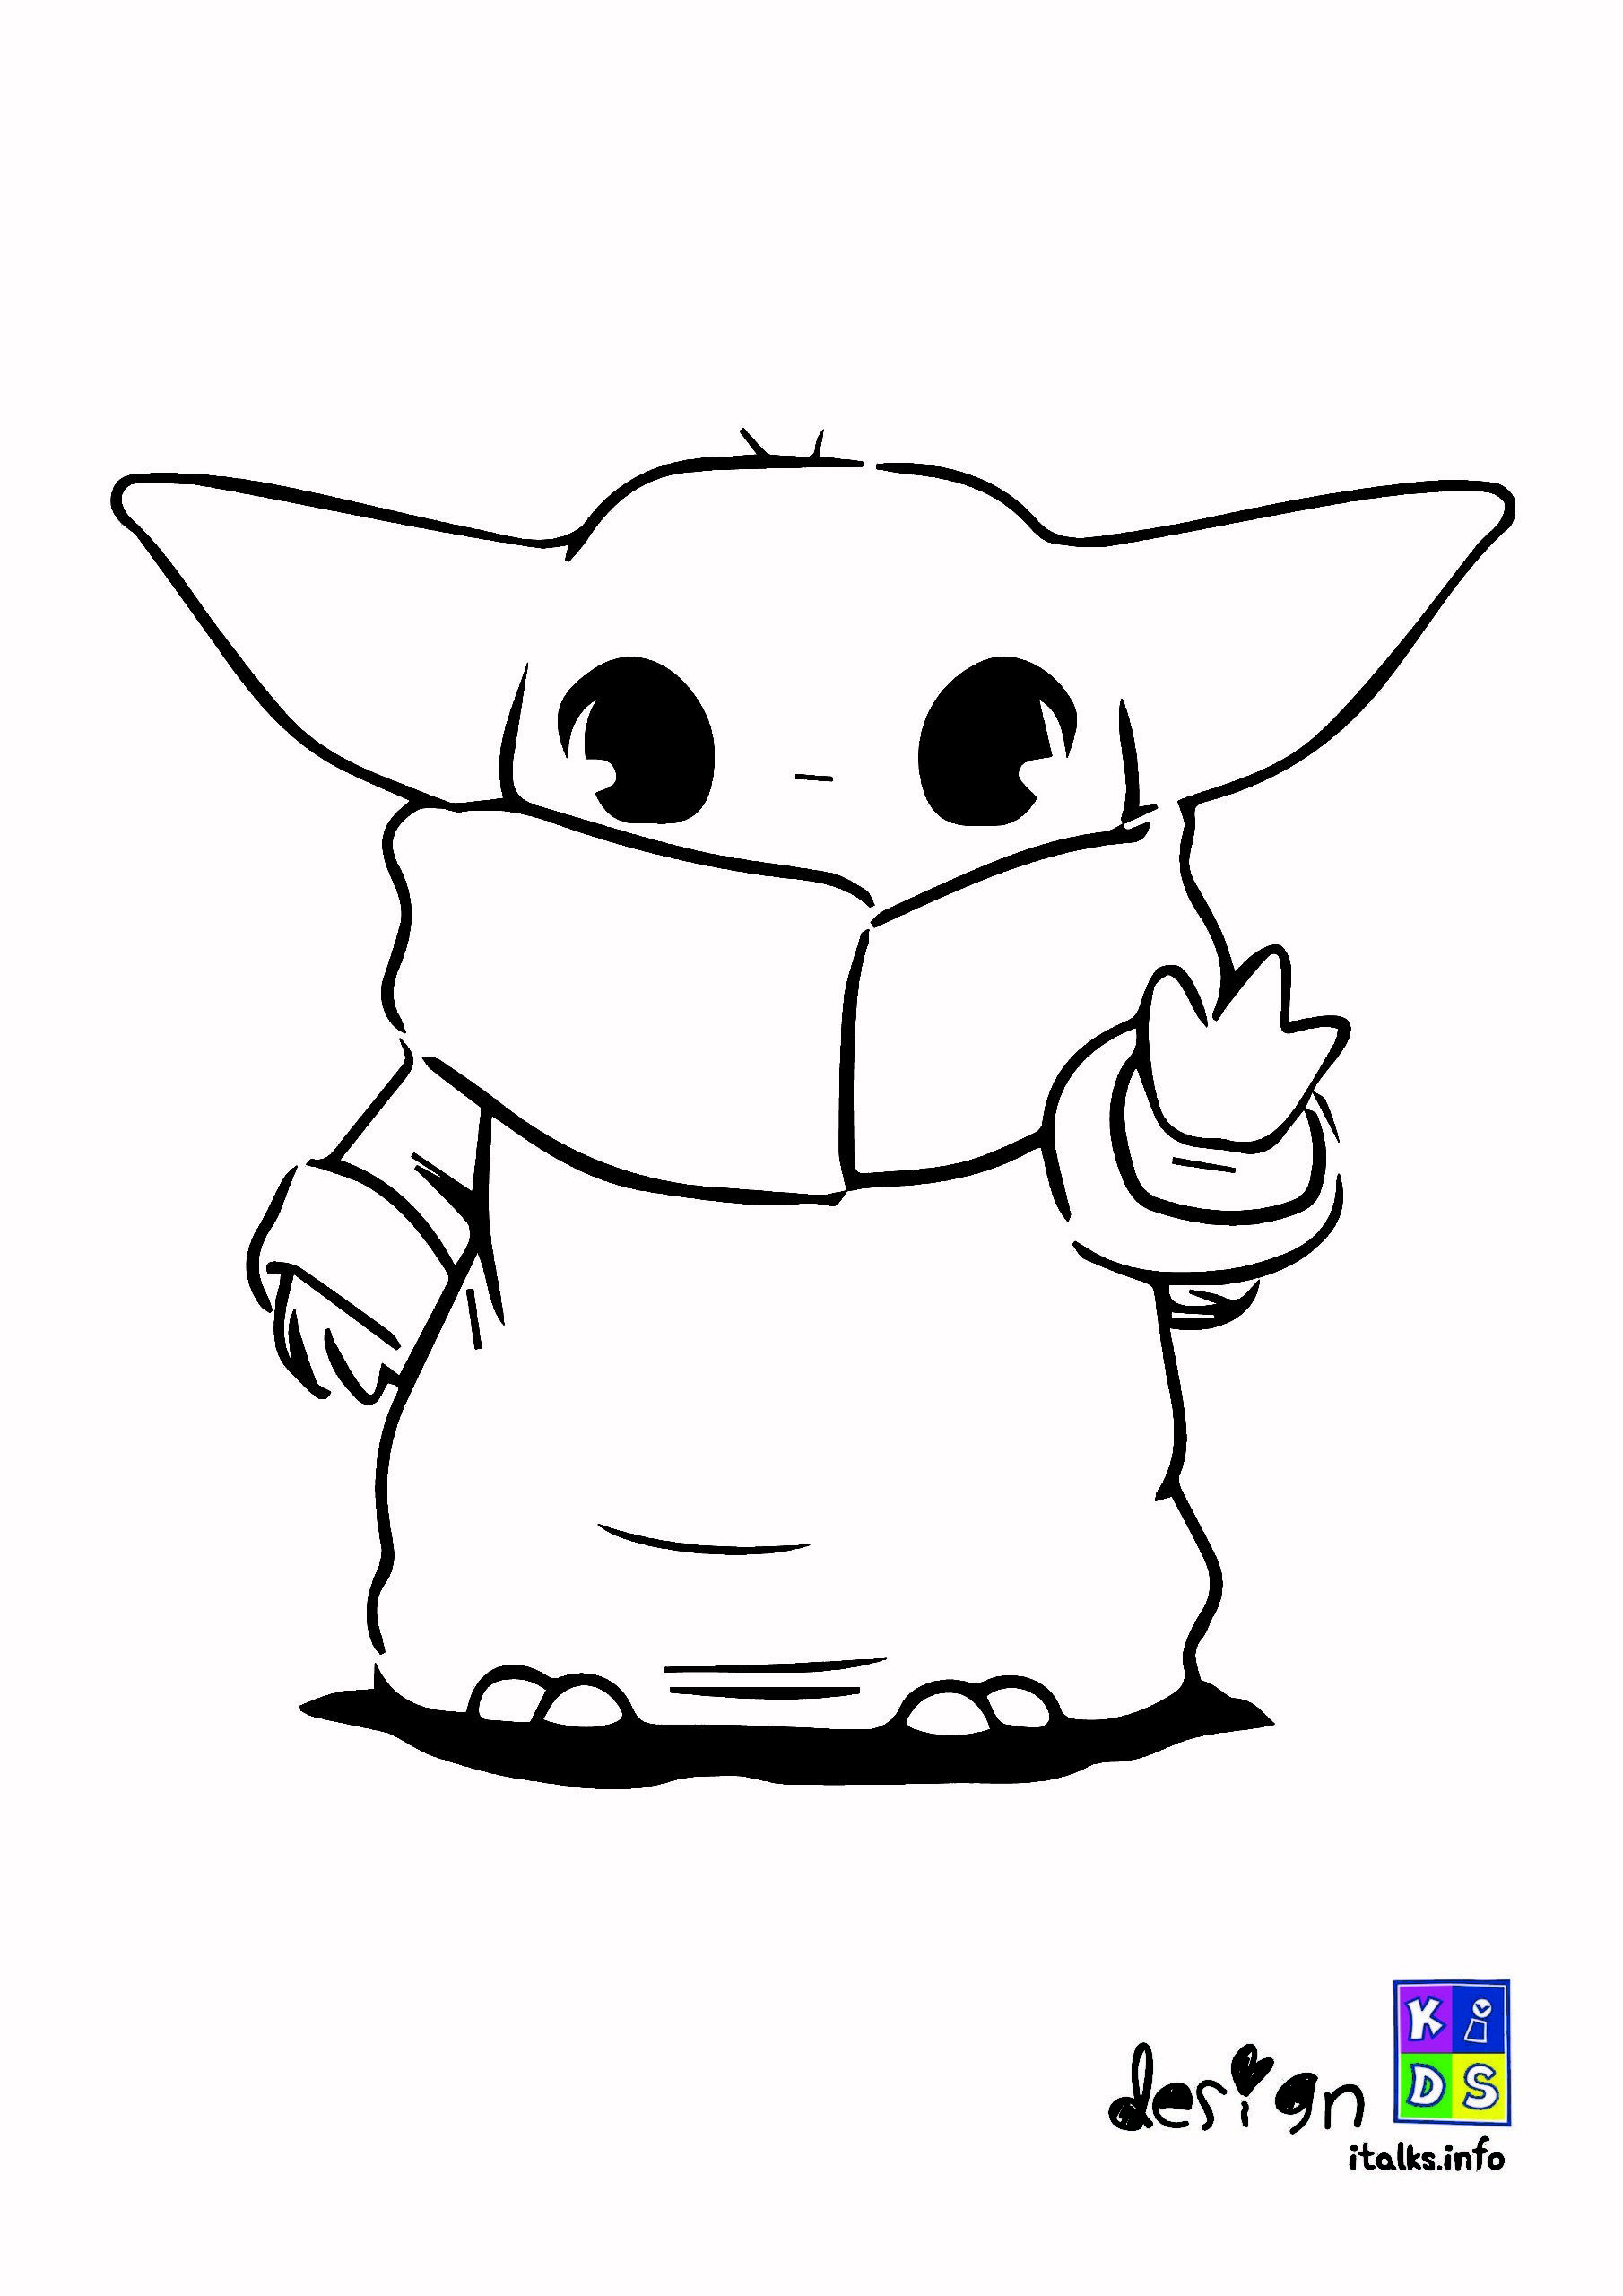 Baby Yoda Coloring Images In 2020 Coloring Pages Yoda Coloring Books